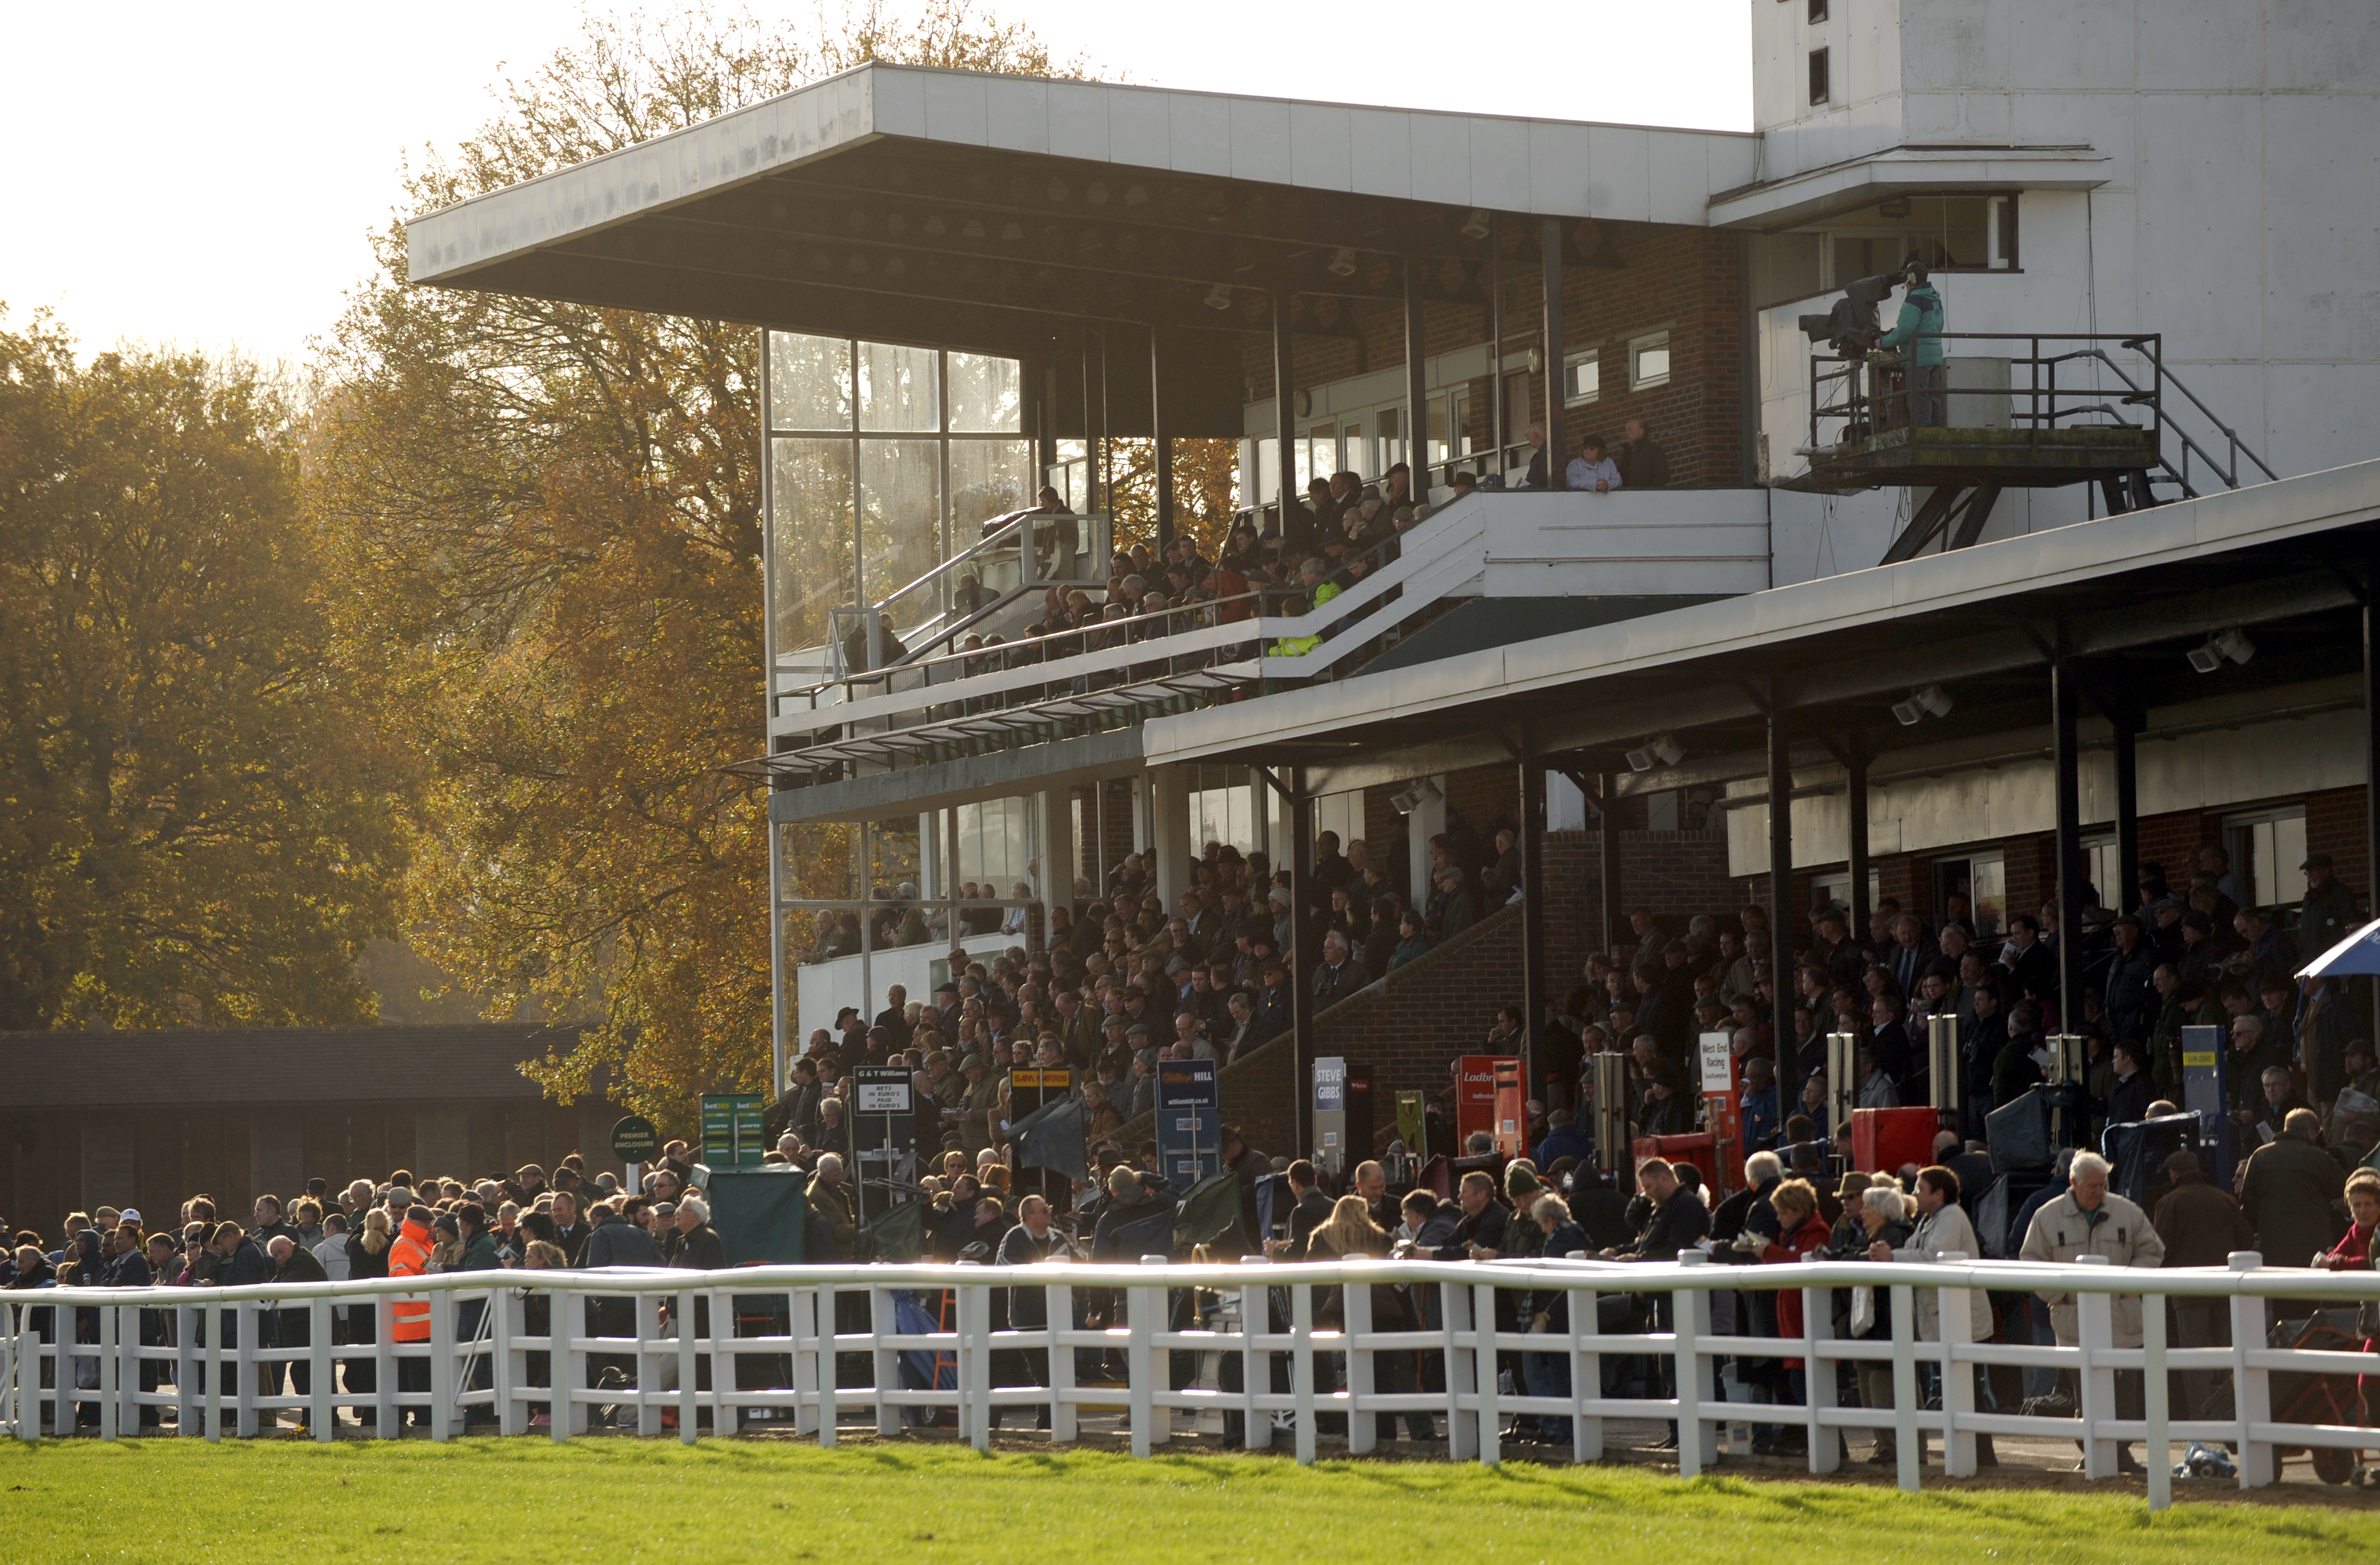 Plumpton will be one of the courses to welcome racing back on Wednesday, after the shutdown